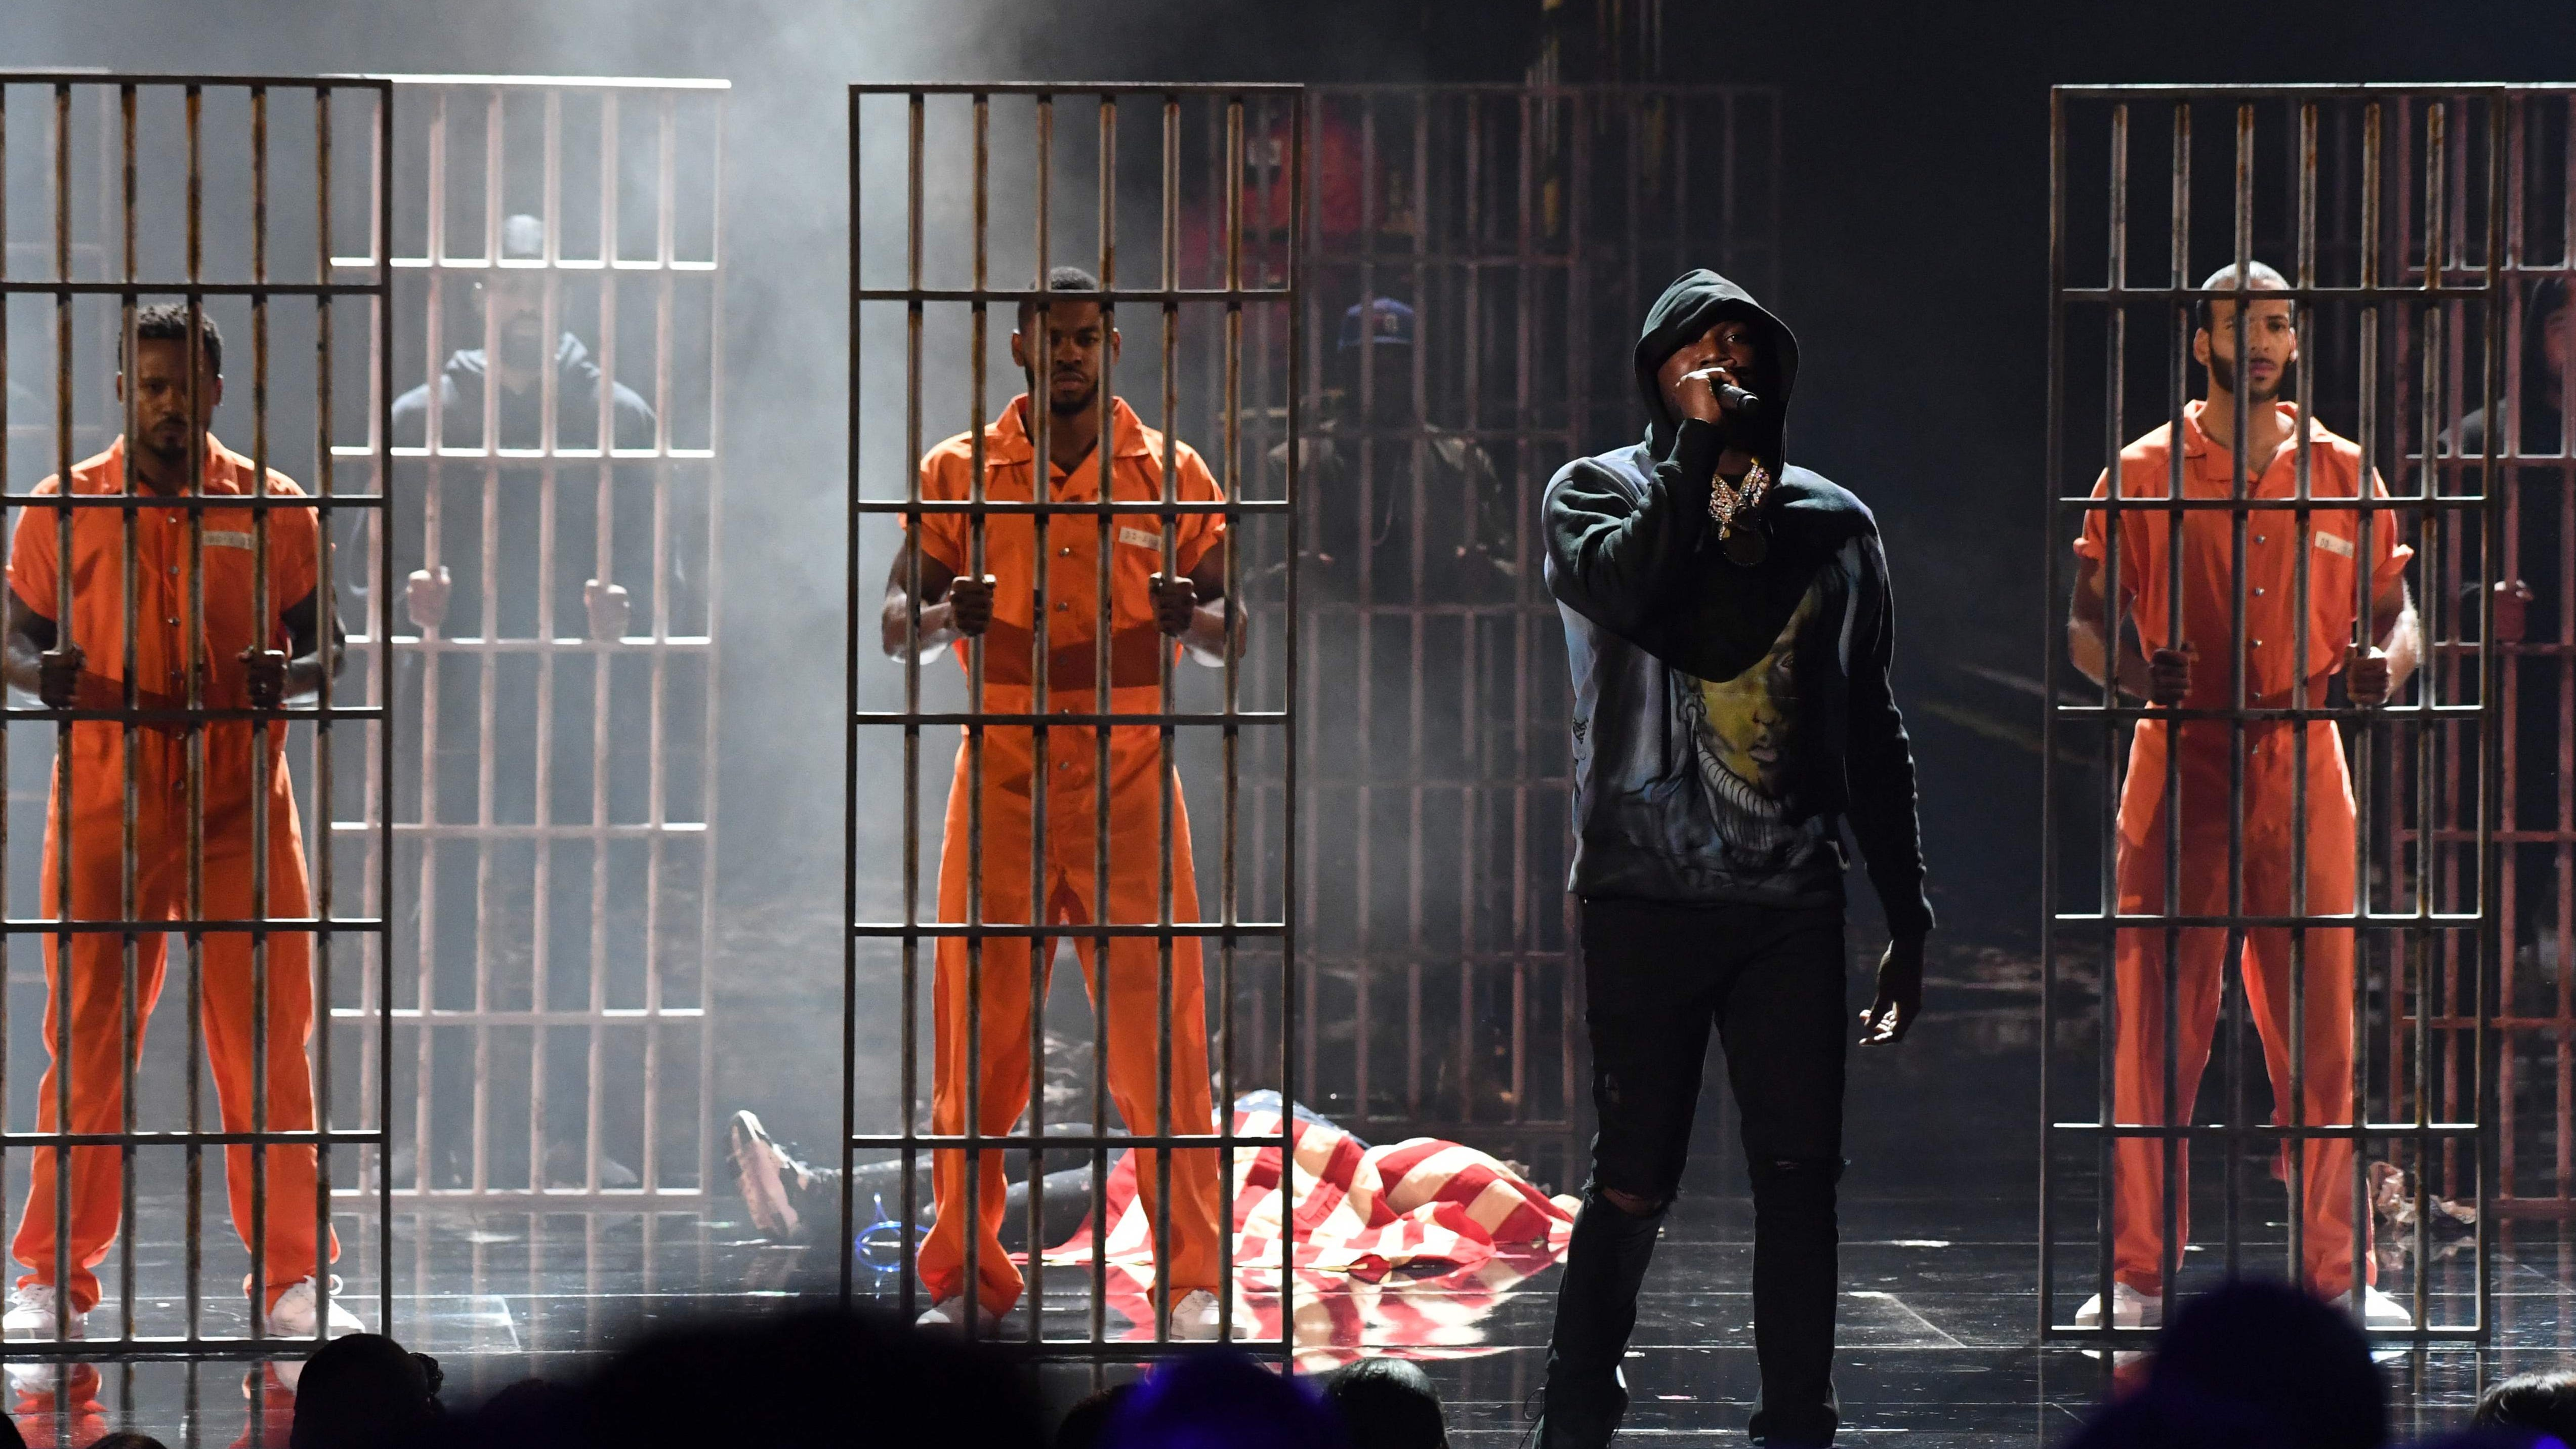 Meek Mill performs onstage during the BET Awards at Microsoft Theater in Los Angeles on June 24, 2018.